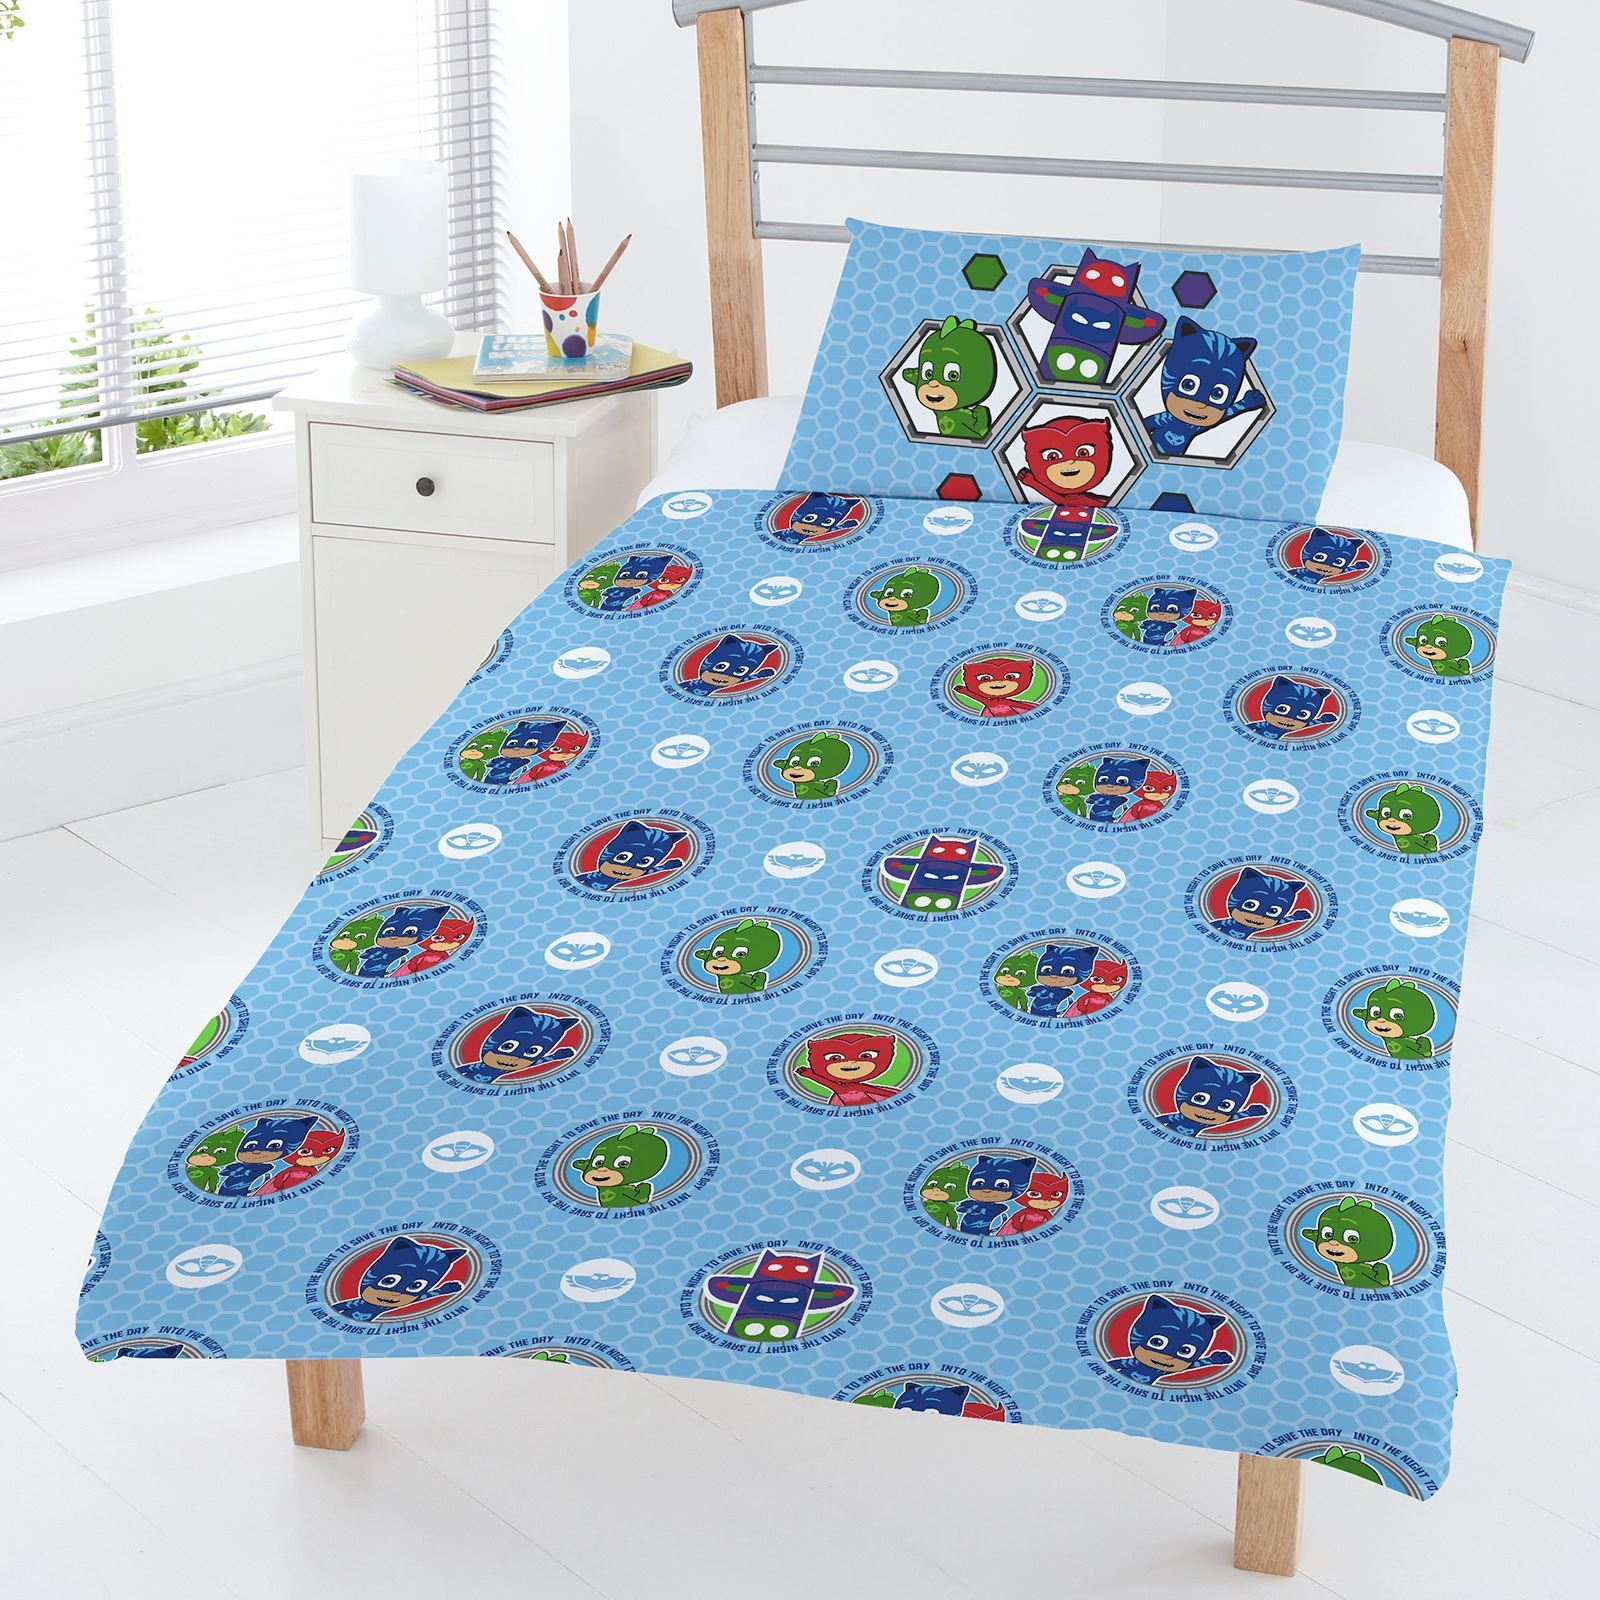 Octonauts Toddler Bed Sheets